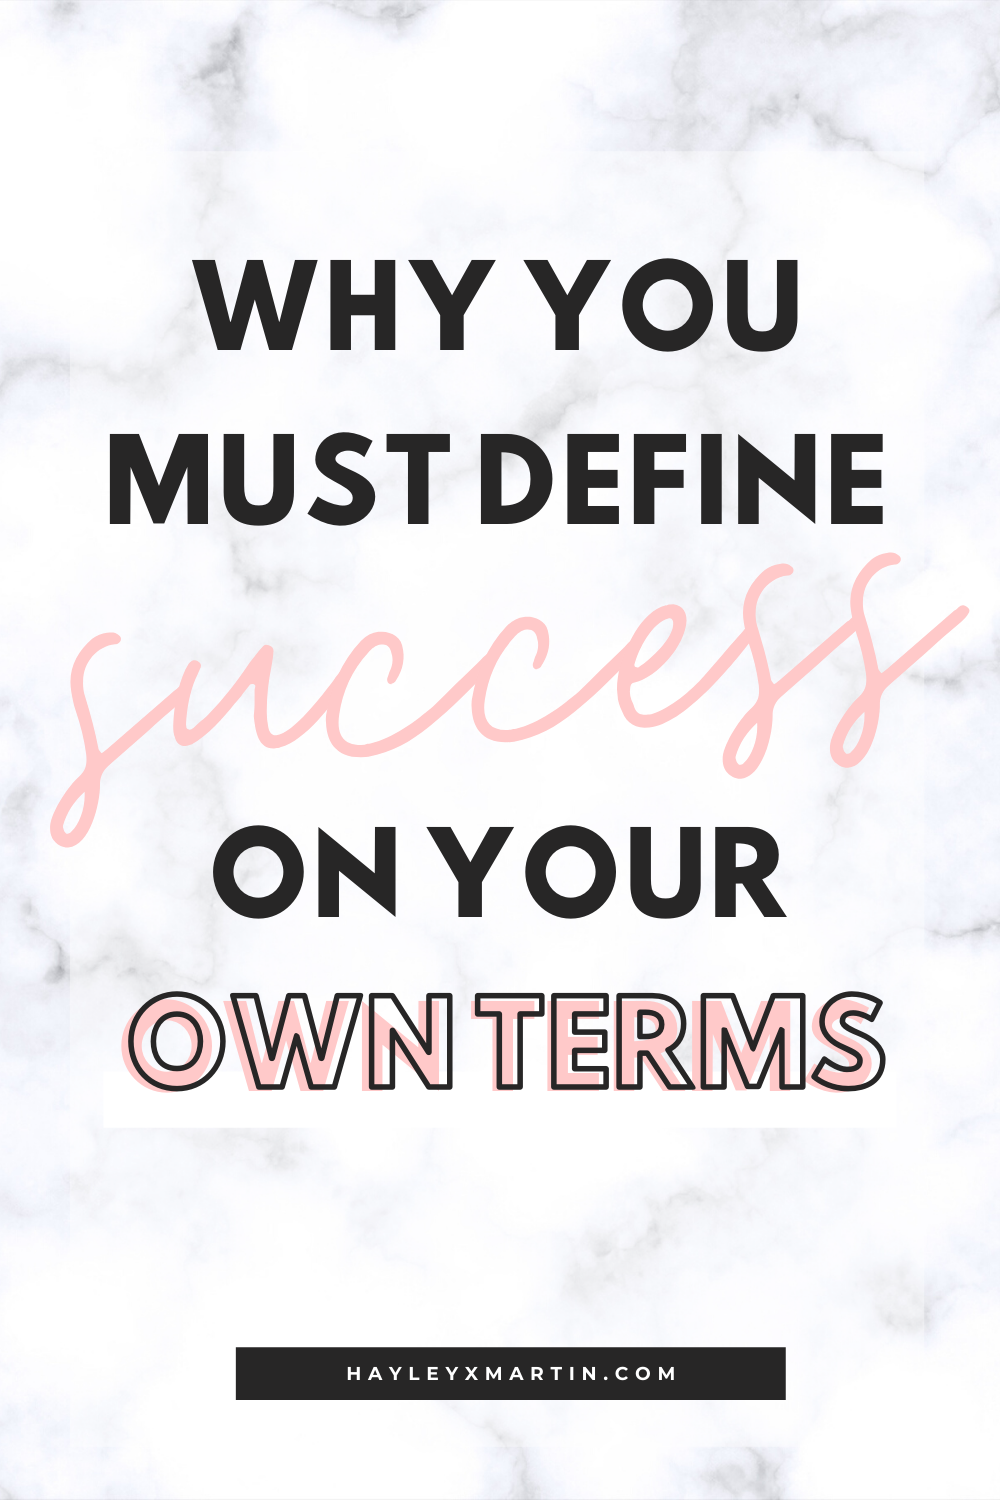 WHY YOU MUST DEFINE SUCCESS ON YOUR OWN TERMS | HAYLEYXMARTIN